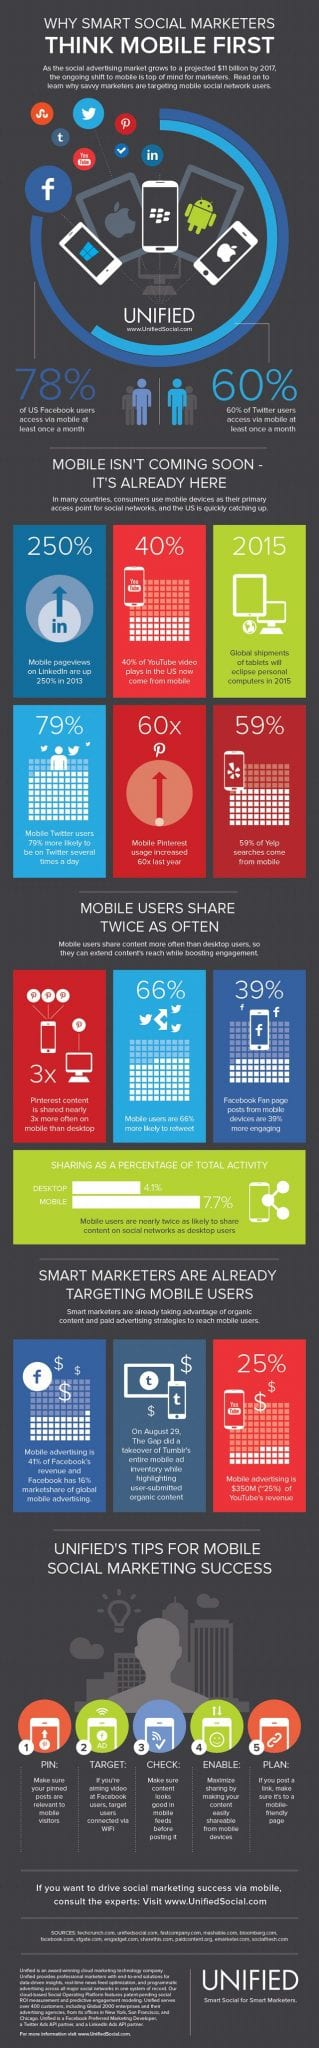 mobile-social-marketing